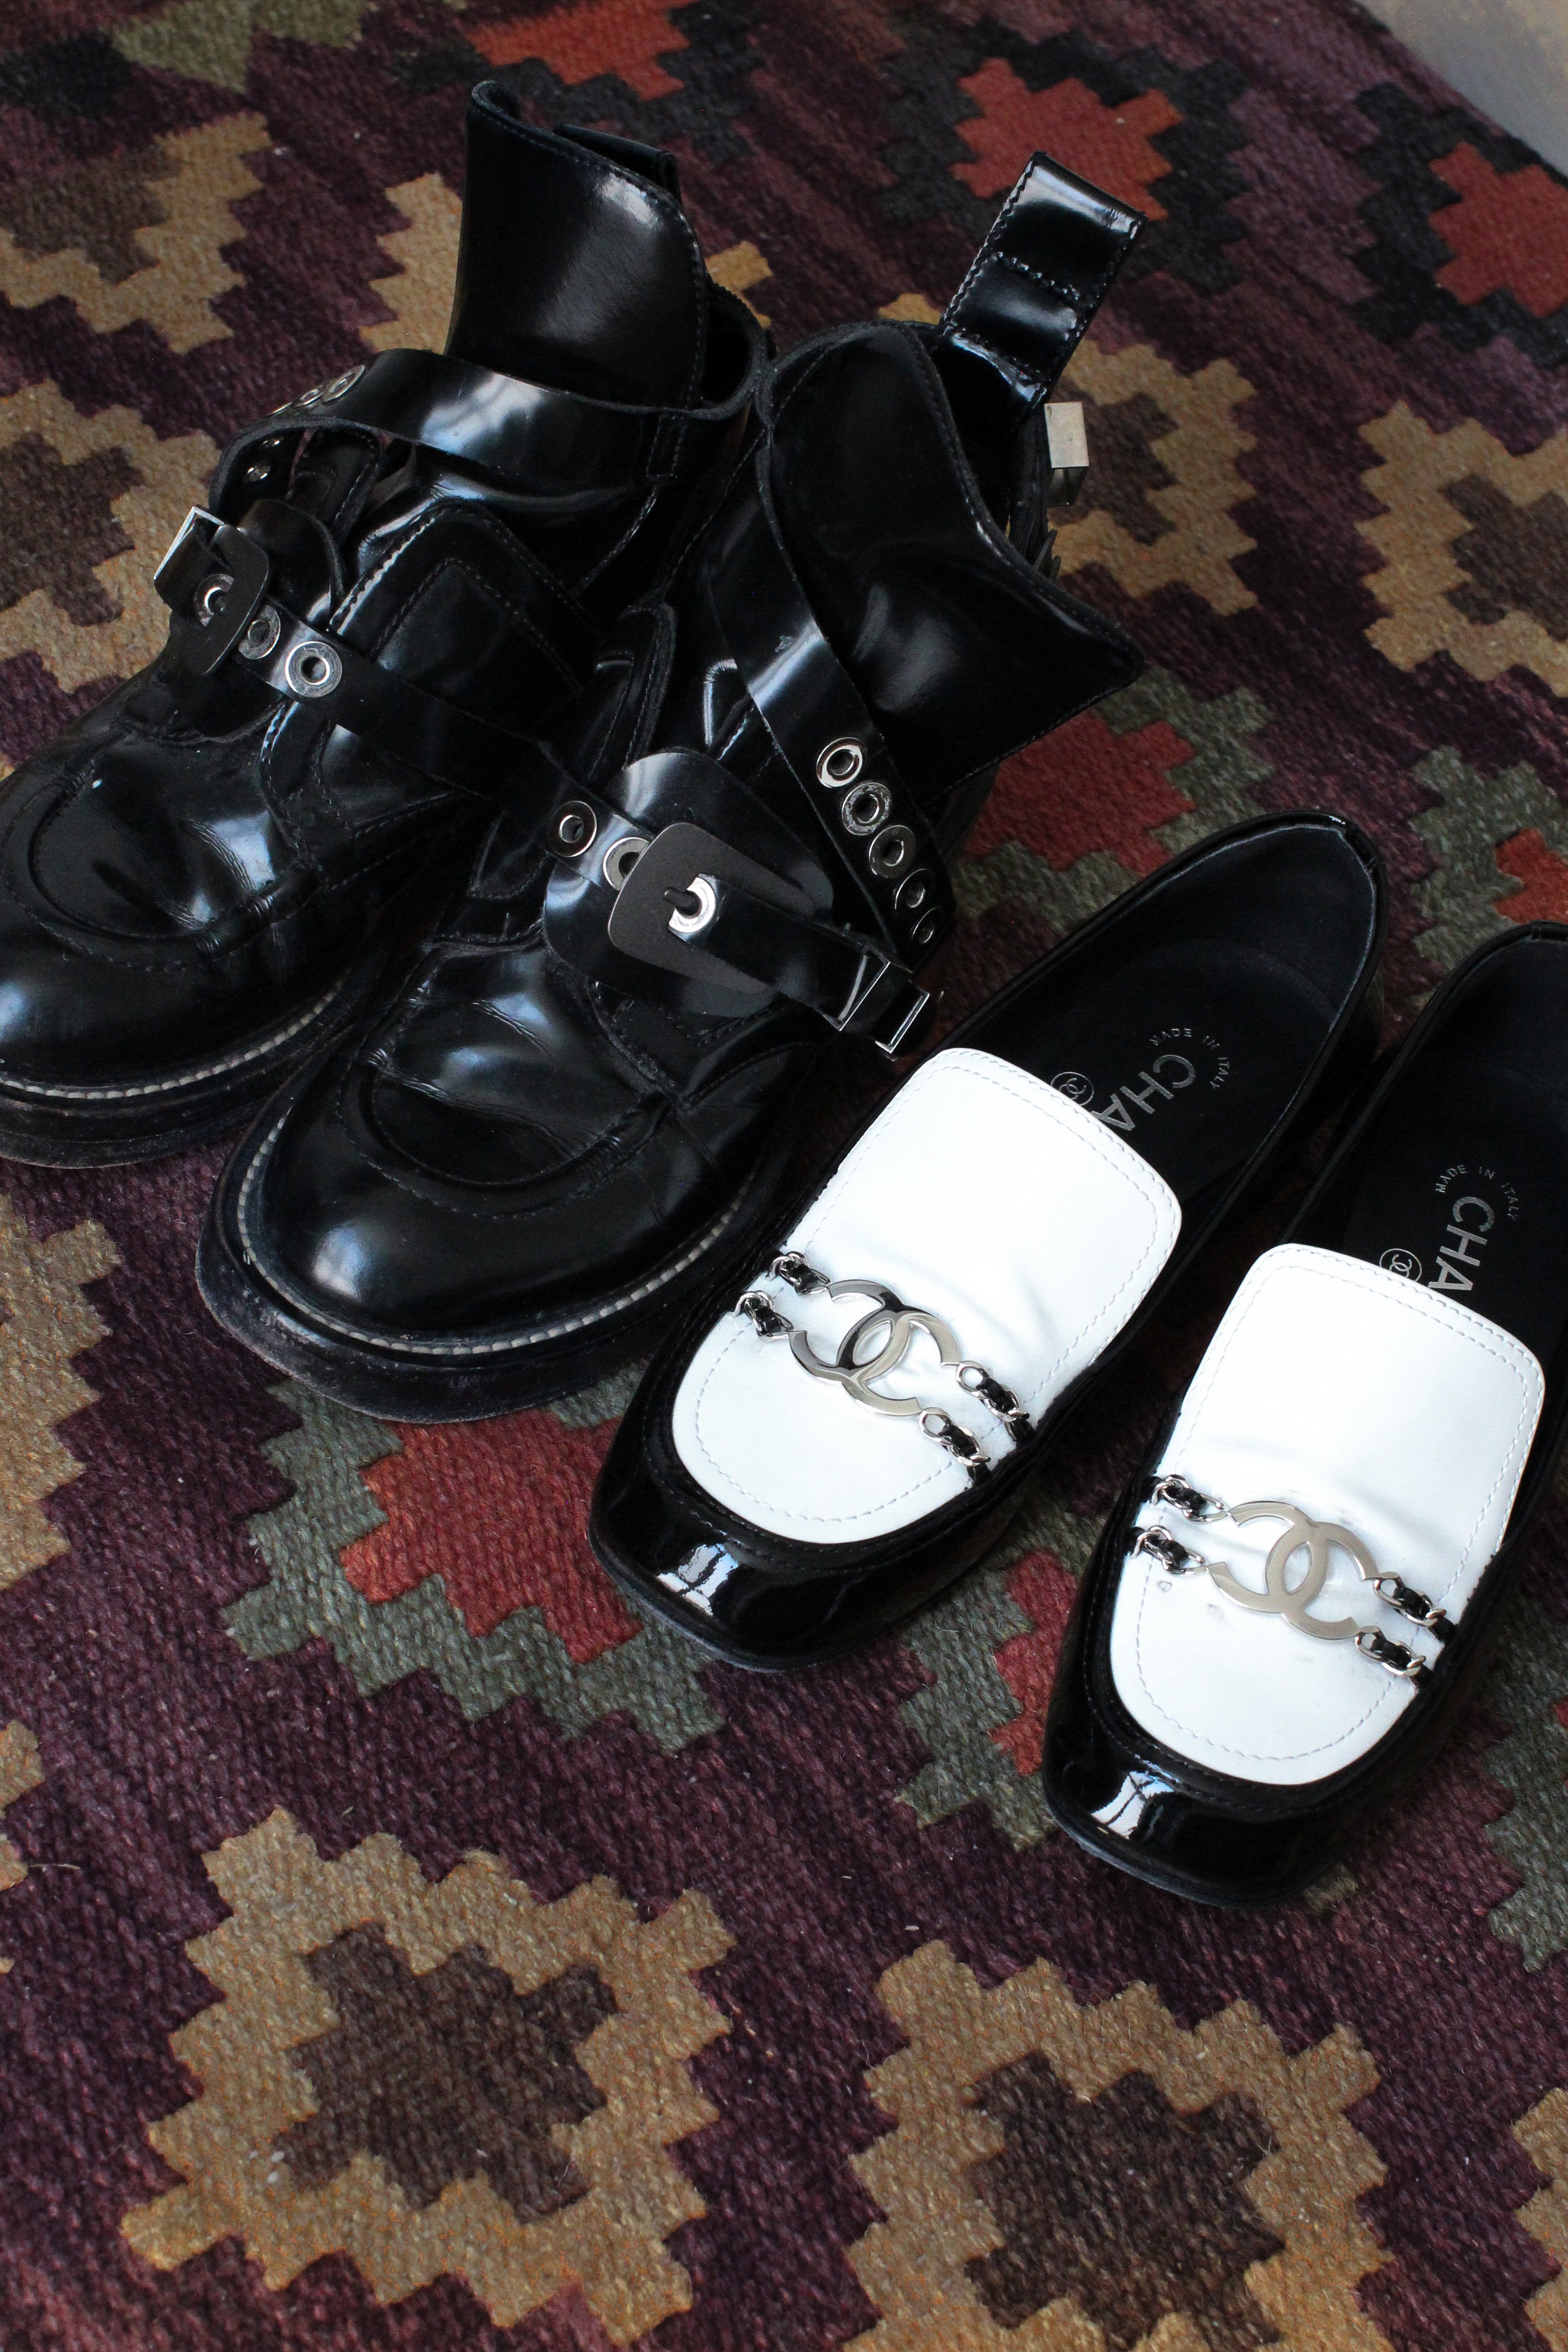 Balenciaga buckle boots Chanel Paris in Rome loafers